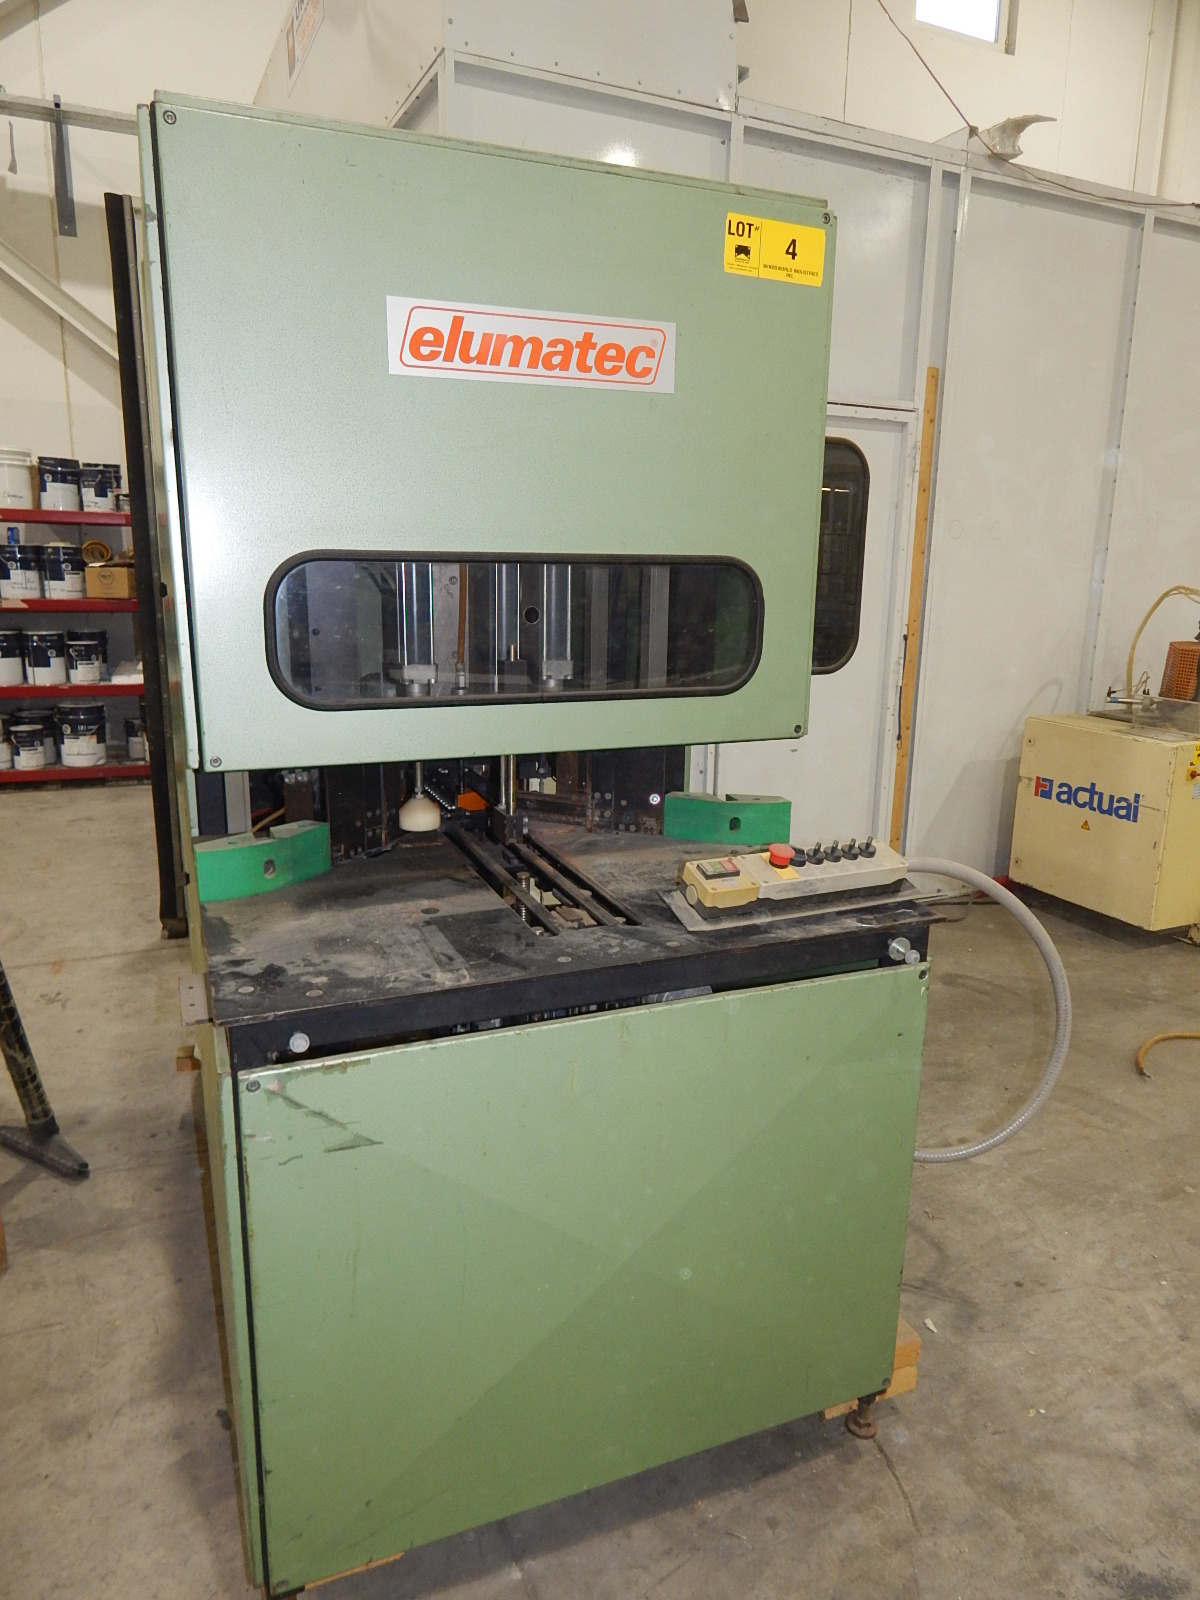 ELUMATEC 180/WP-3RU SINGLE HEAD CORNER CLEANER WITH 3,400 RPM, 230V/3PH/60HZ, S/N: 2009 (CI) - Image 4 of 6